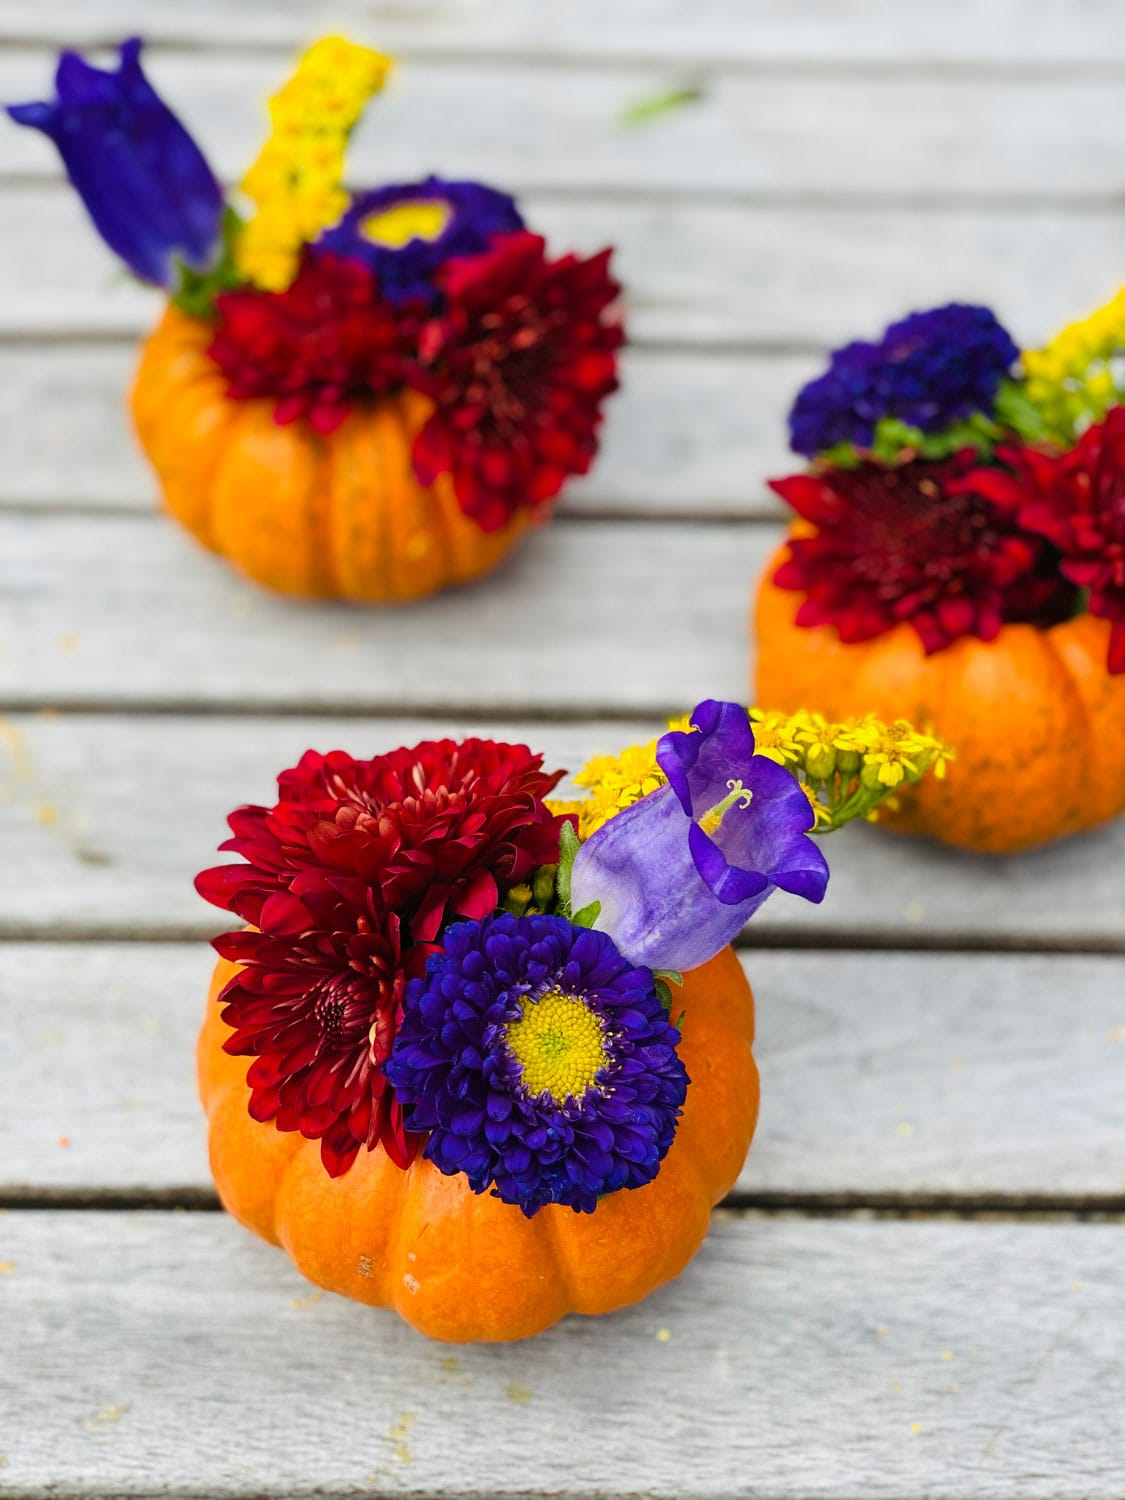 How to Make Mini Pumpkin Planters with real pumpkins and a few fall flowers